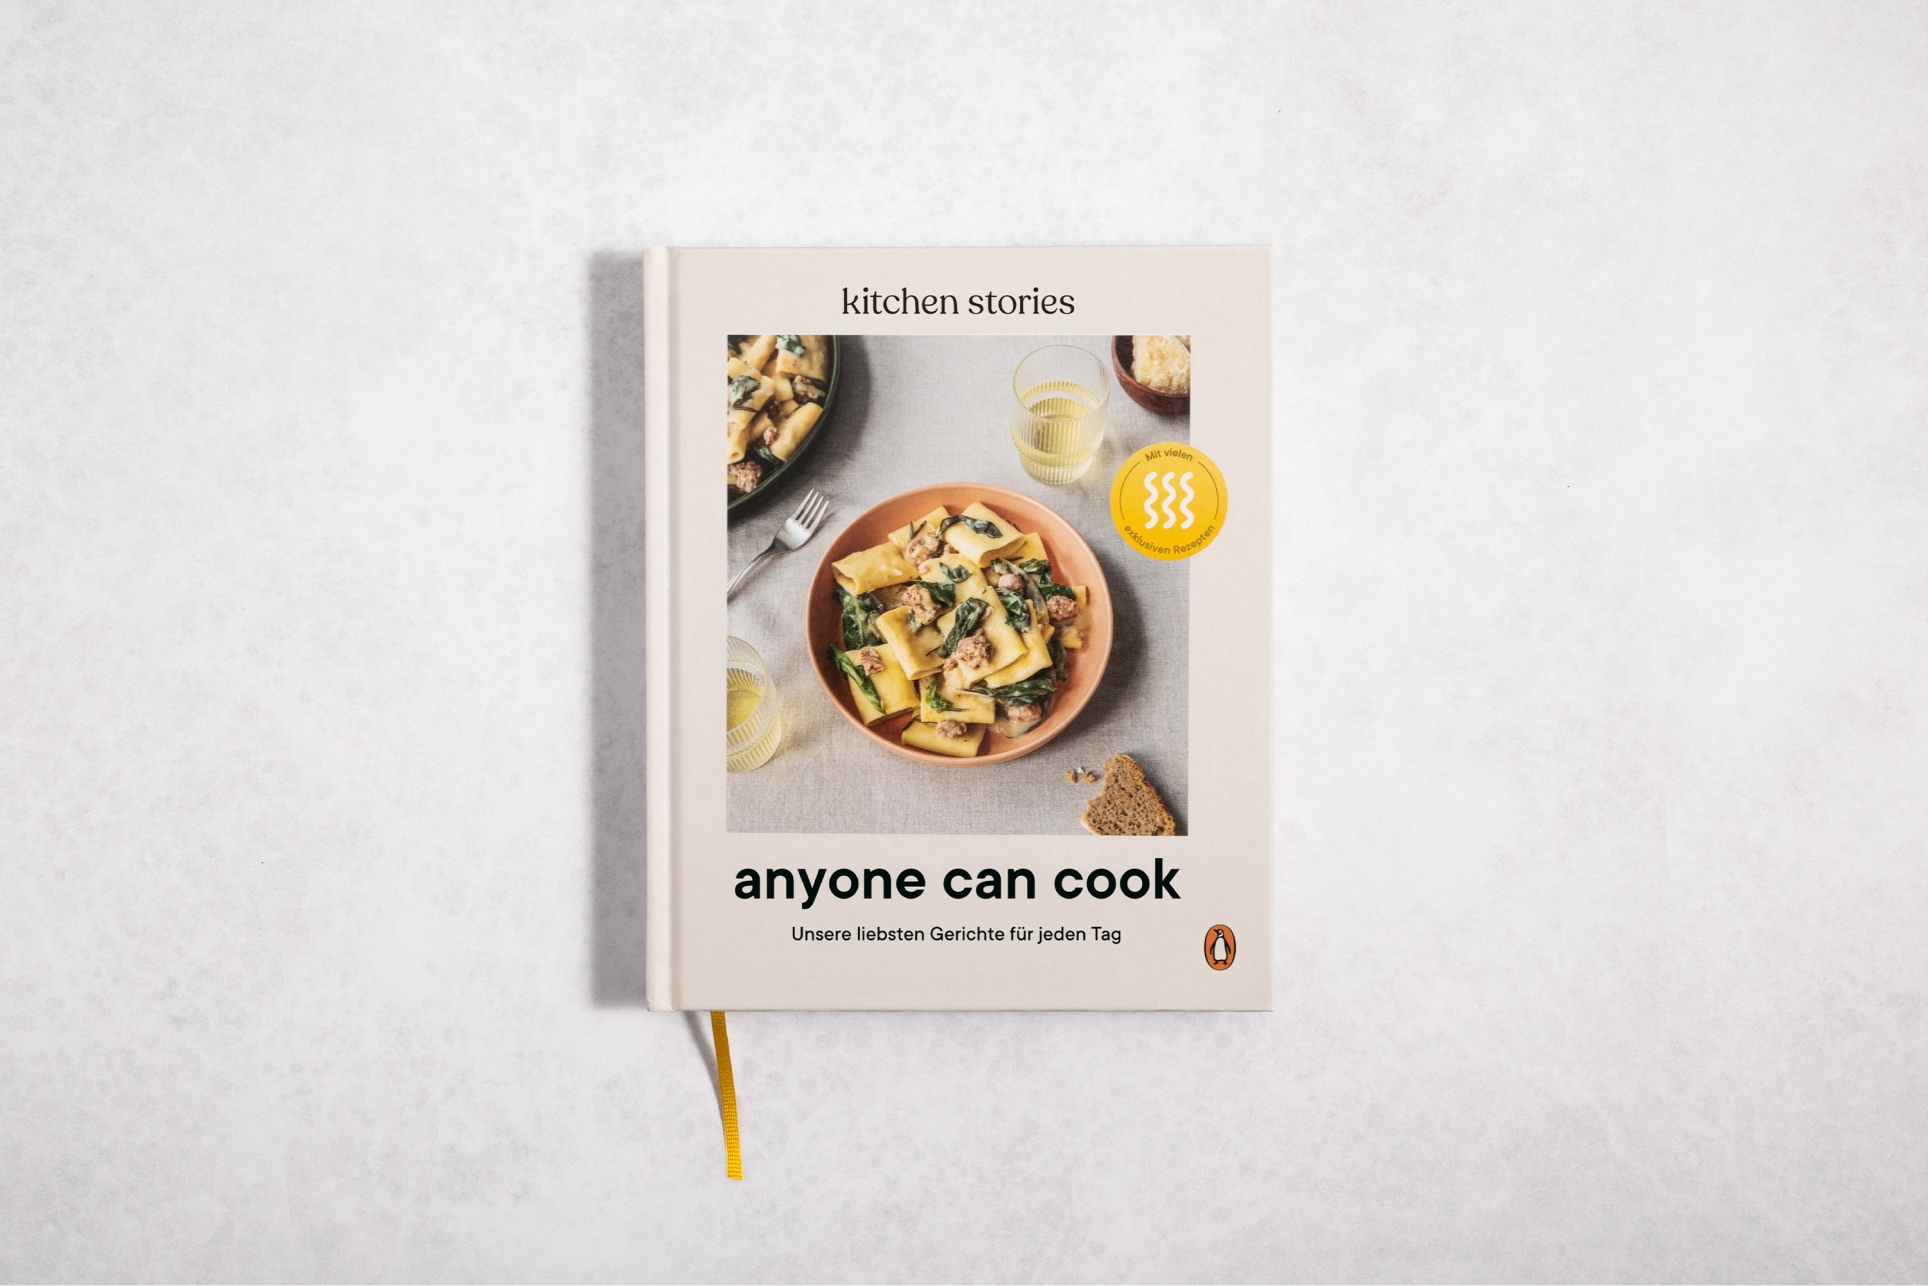 """The cover of a cookbook titled """"Anyone Can Cook"""" by Kitchen Stories"""